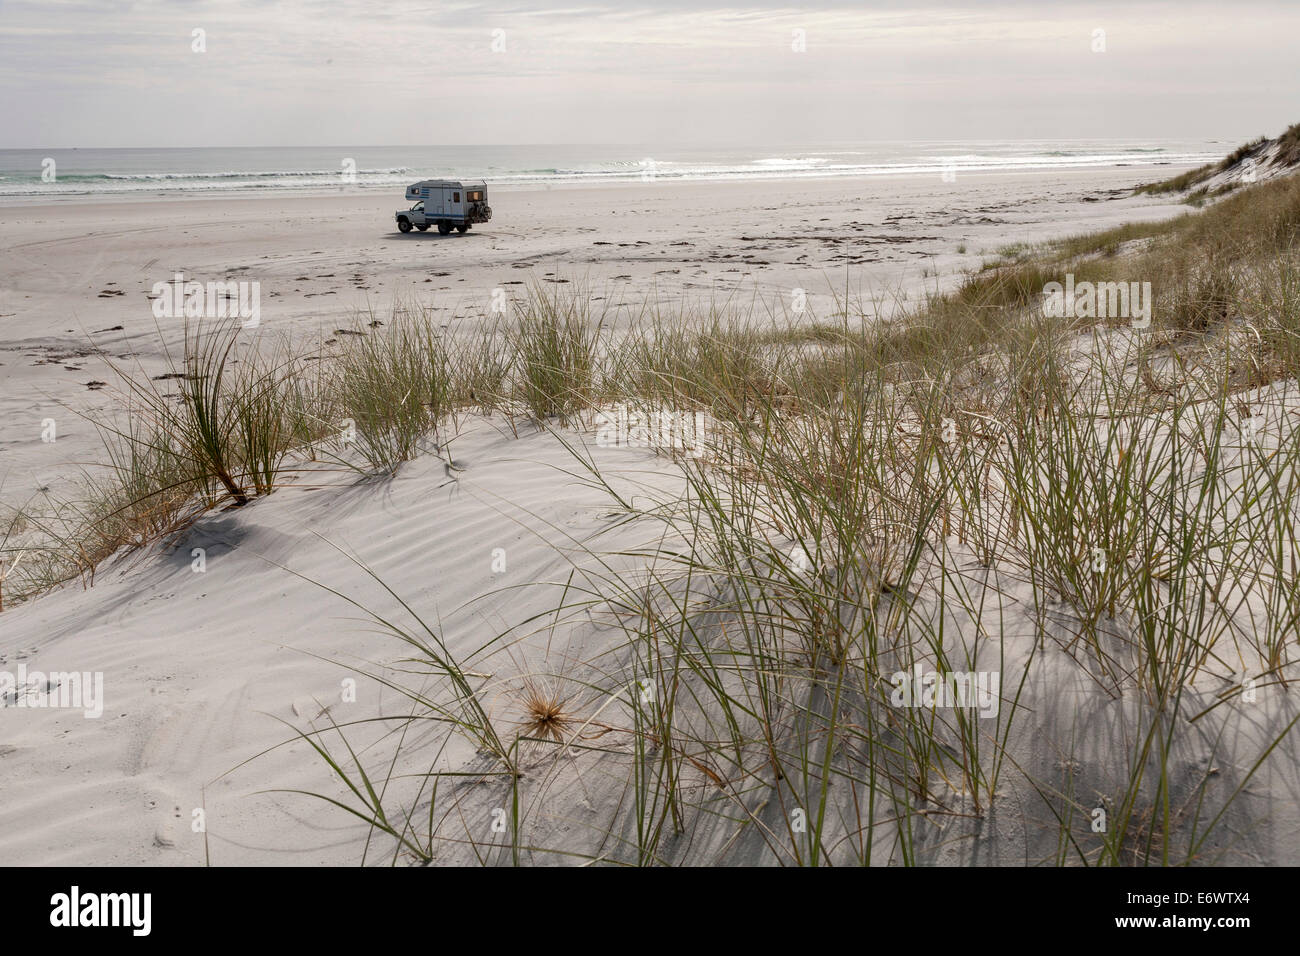 4WD camper parked on a remote beach, Northland, North Island, New Zealand - Stock Image